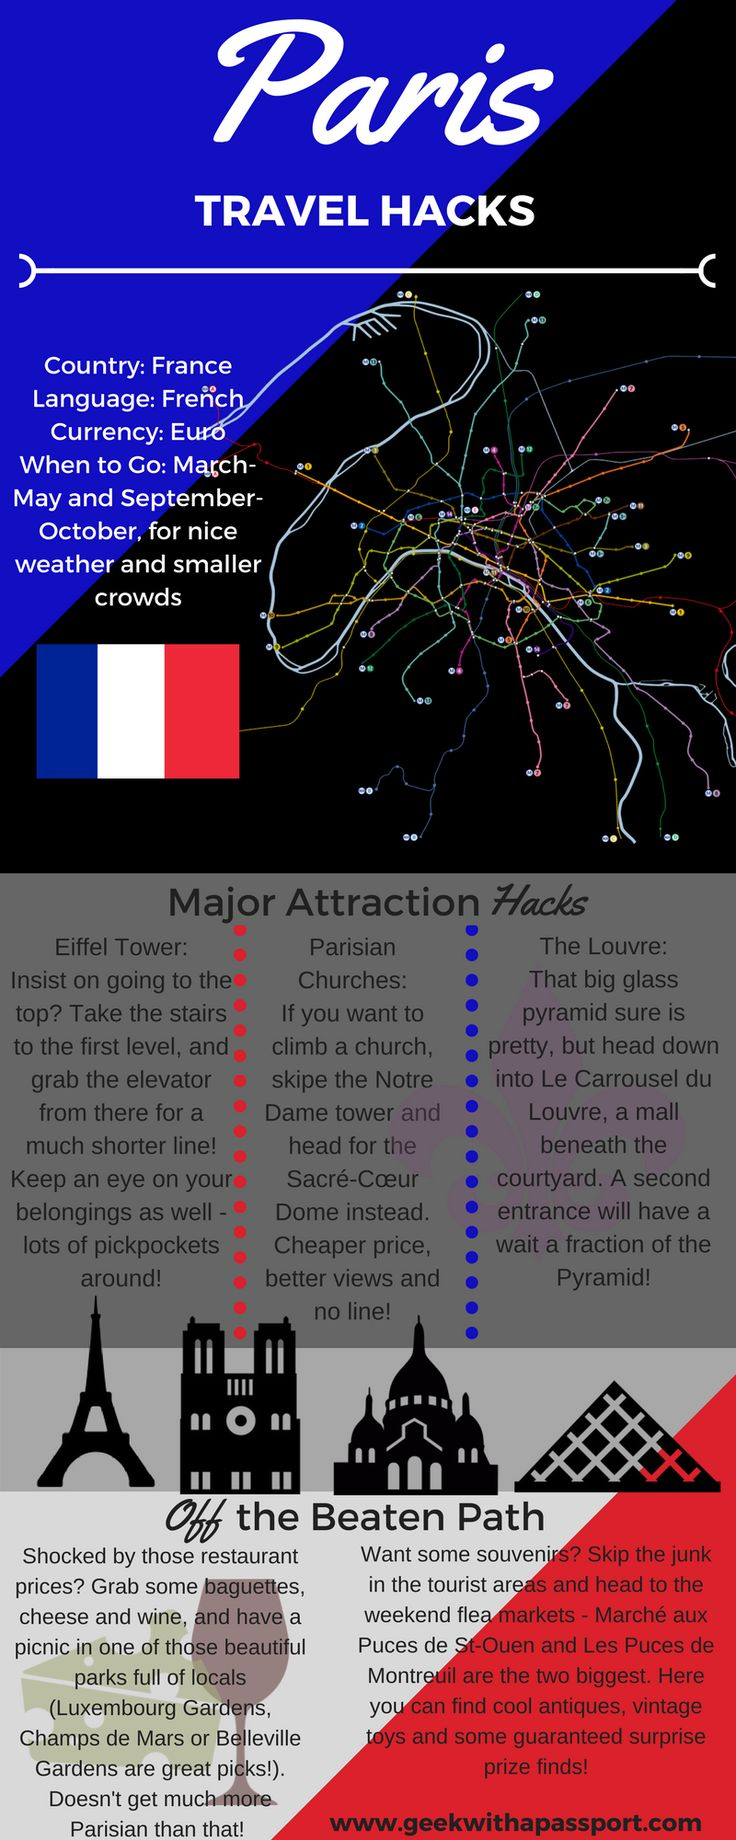 This infographic provides tips and tricks to save money and skip the lines while visiting Paris, France! #infographic #travelinfographic